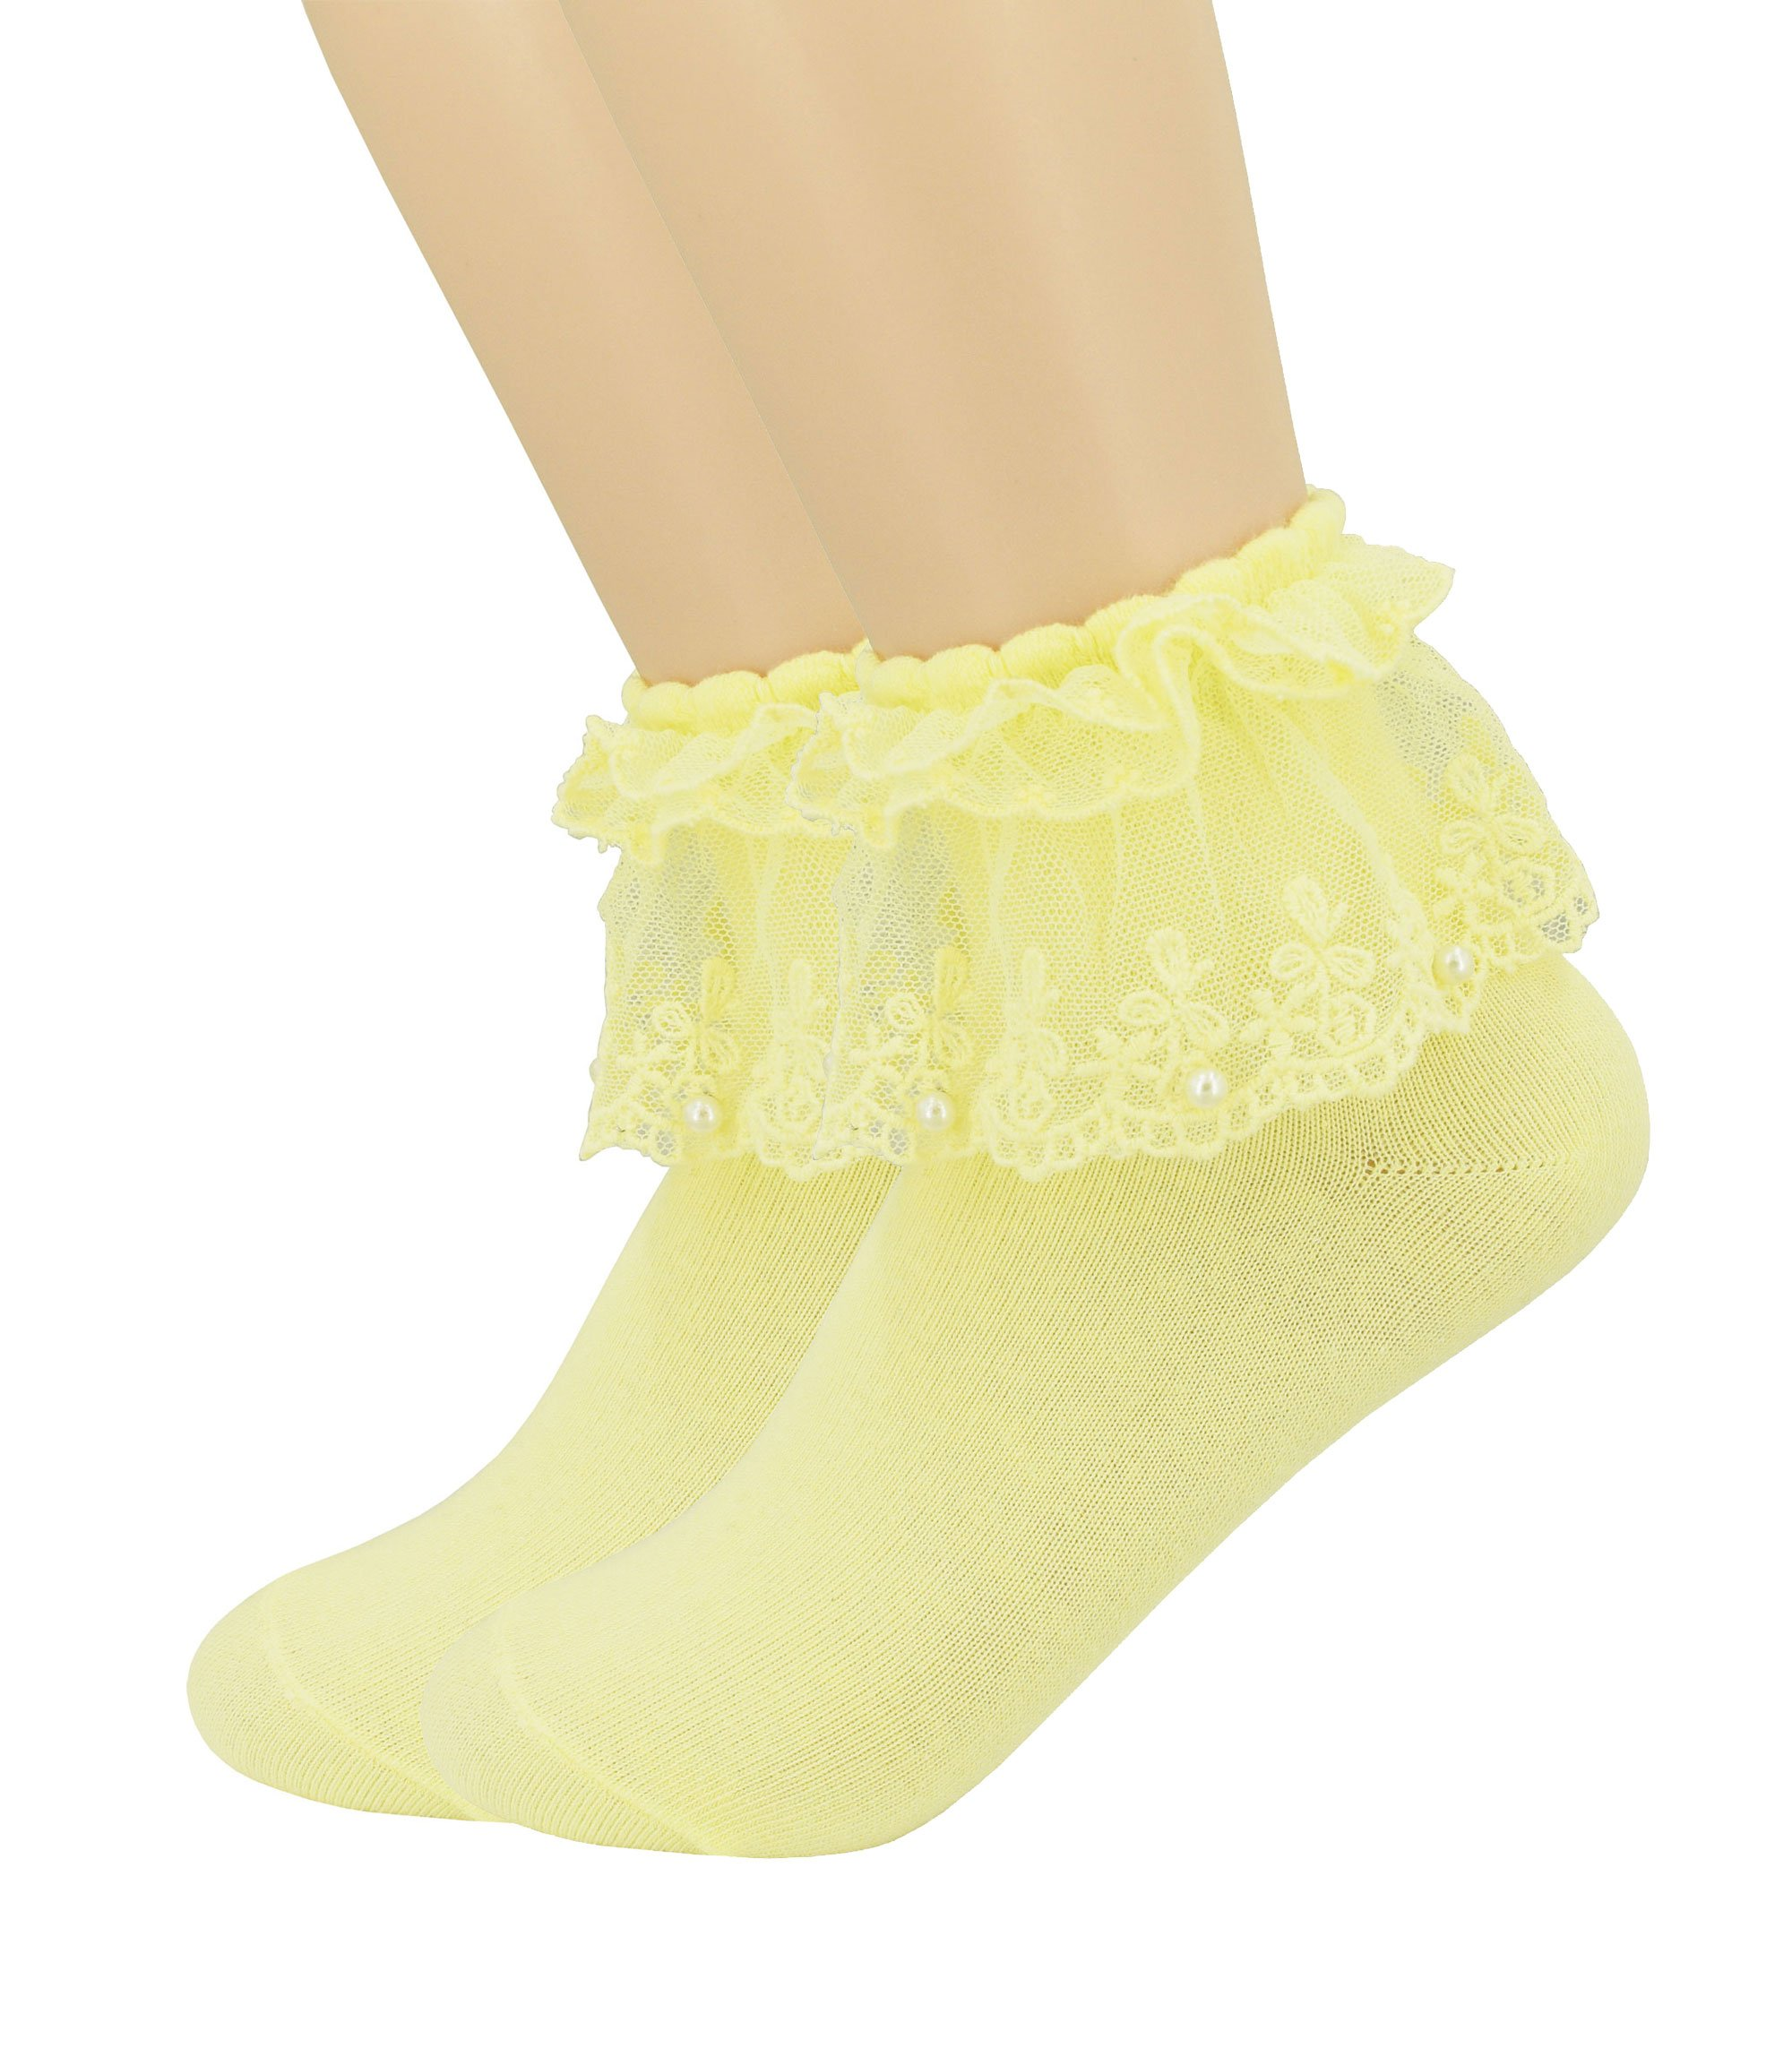 YJLSO Women Lace Ruffle Frilly Cotton Socks Princess Socks Ankle Socks,2 pairs, Style C02 (Yellow)